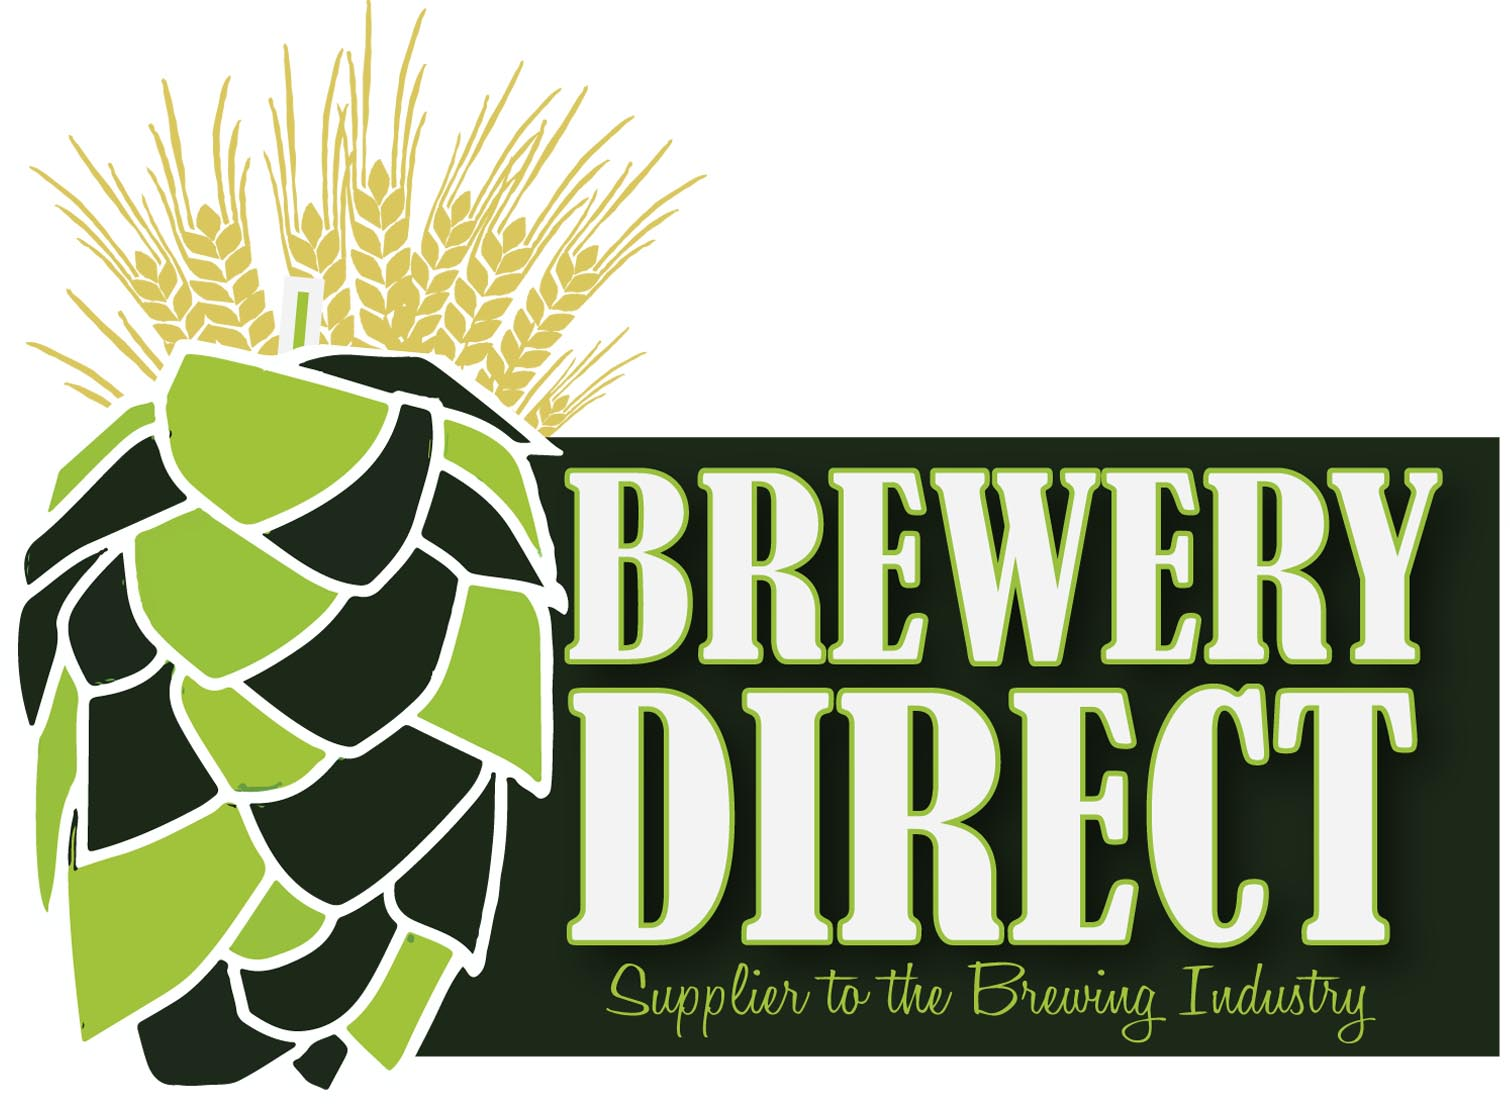 BreweryDirect LOGO (condensed) SMALL